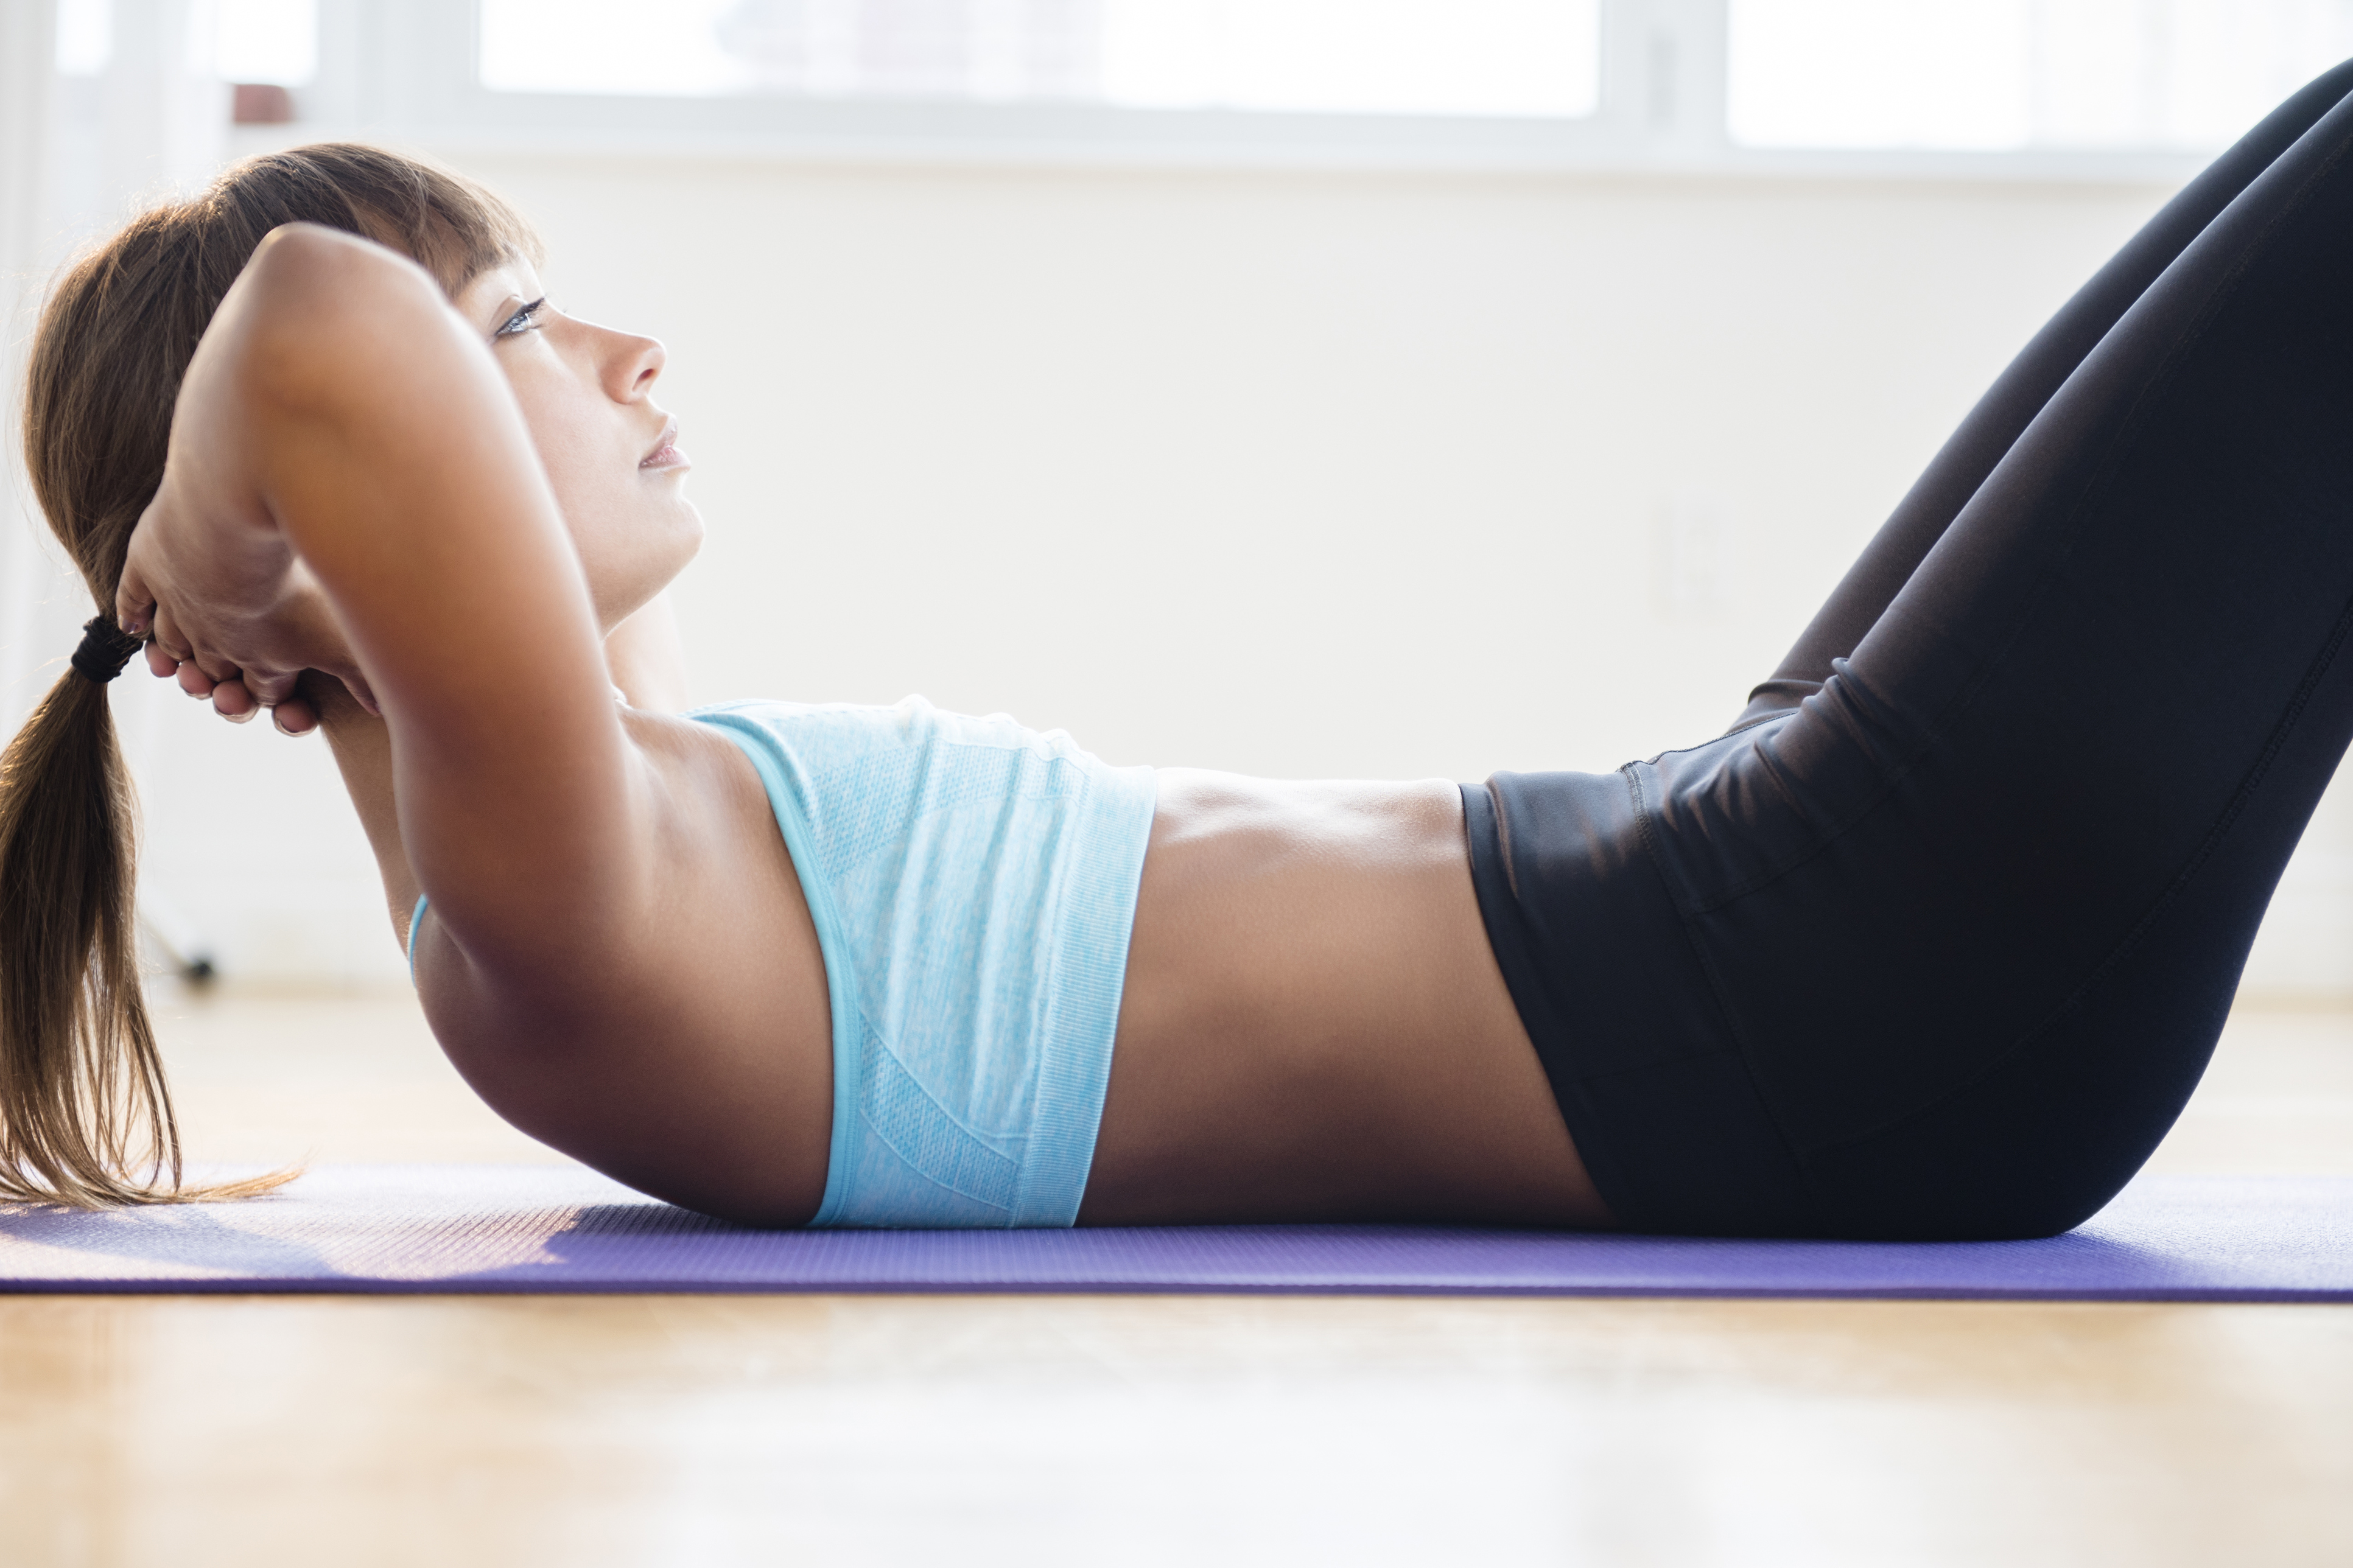 Mixed race woman doing sit-ups on yoga mat